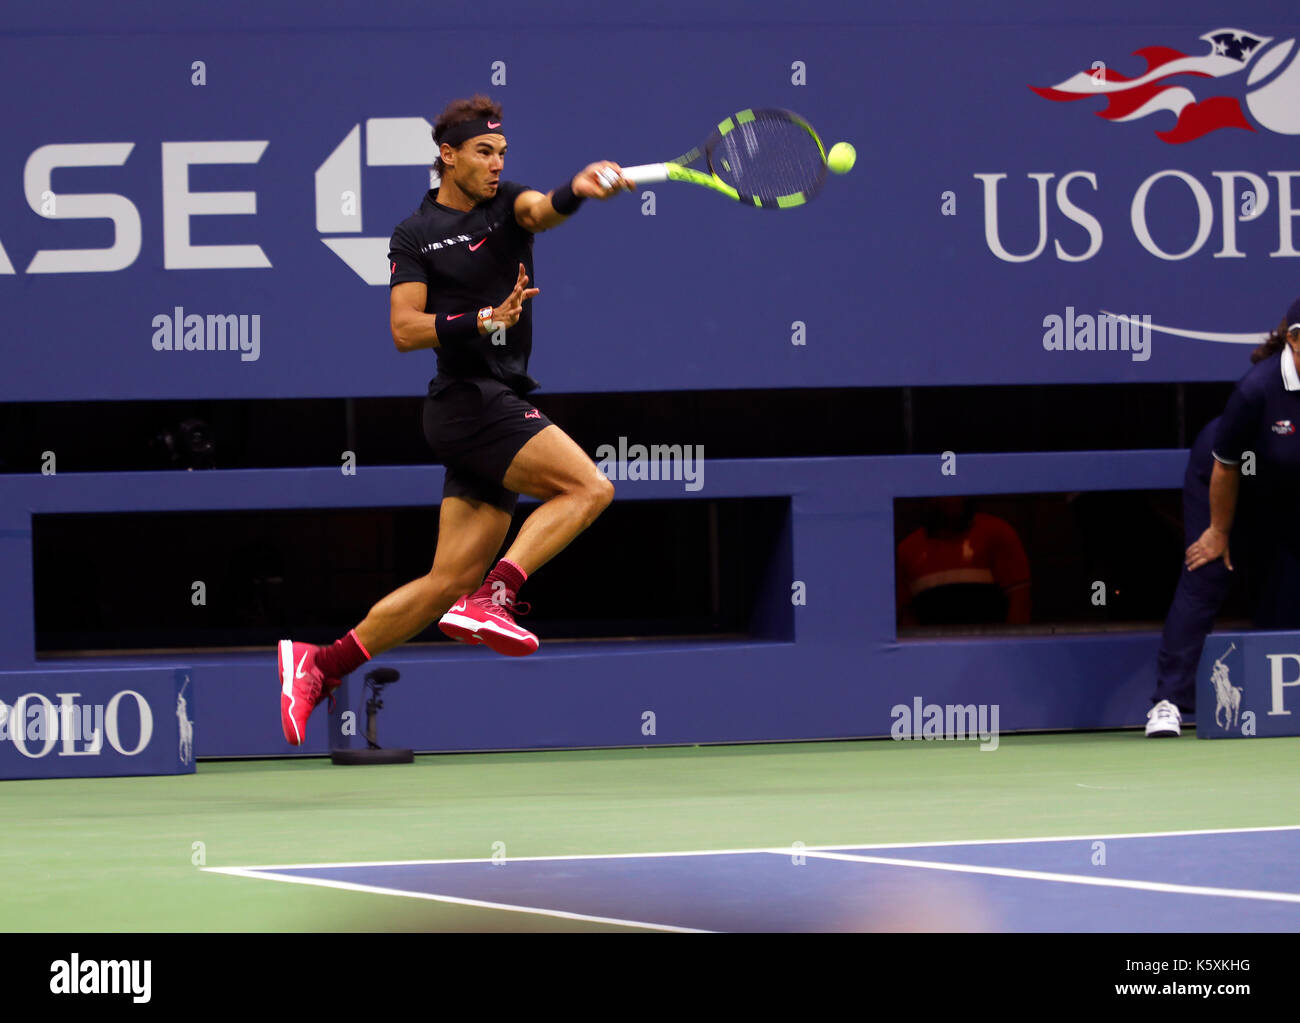 New York, United States. 10th Sep, 2017. US Open Tennis: New York, 10 September, 2017 - Rafael Nadal of Spain goes - Stock Image